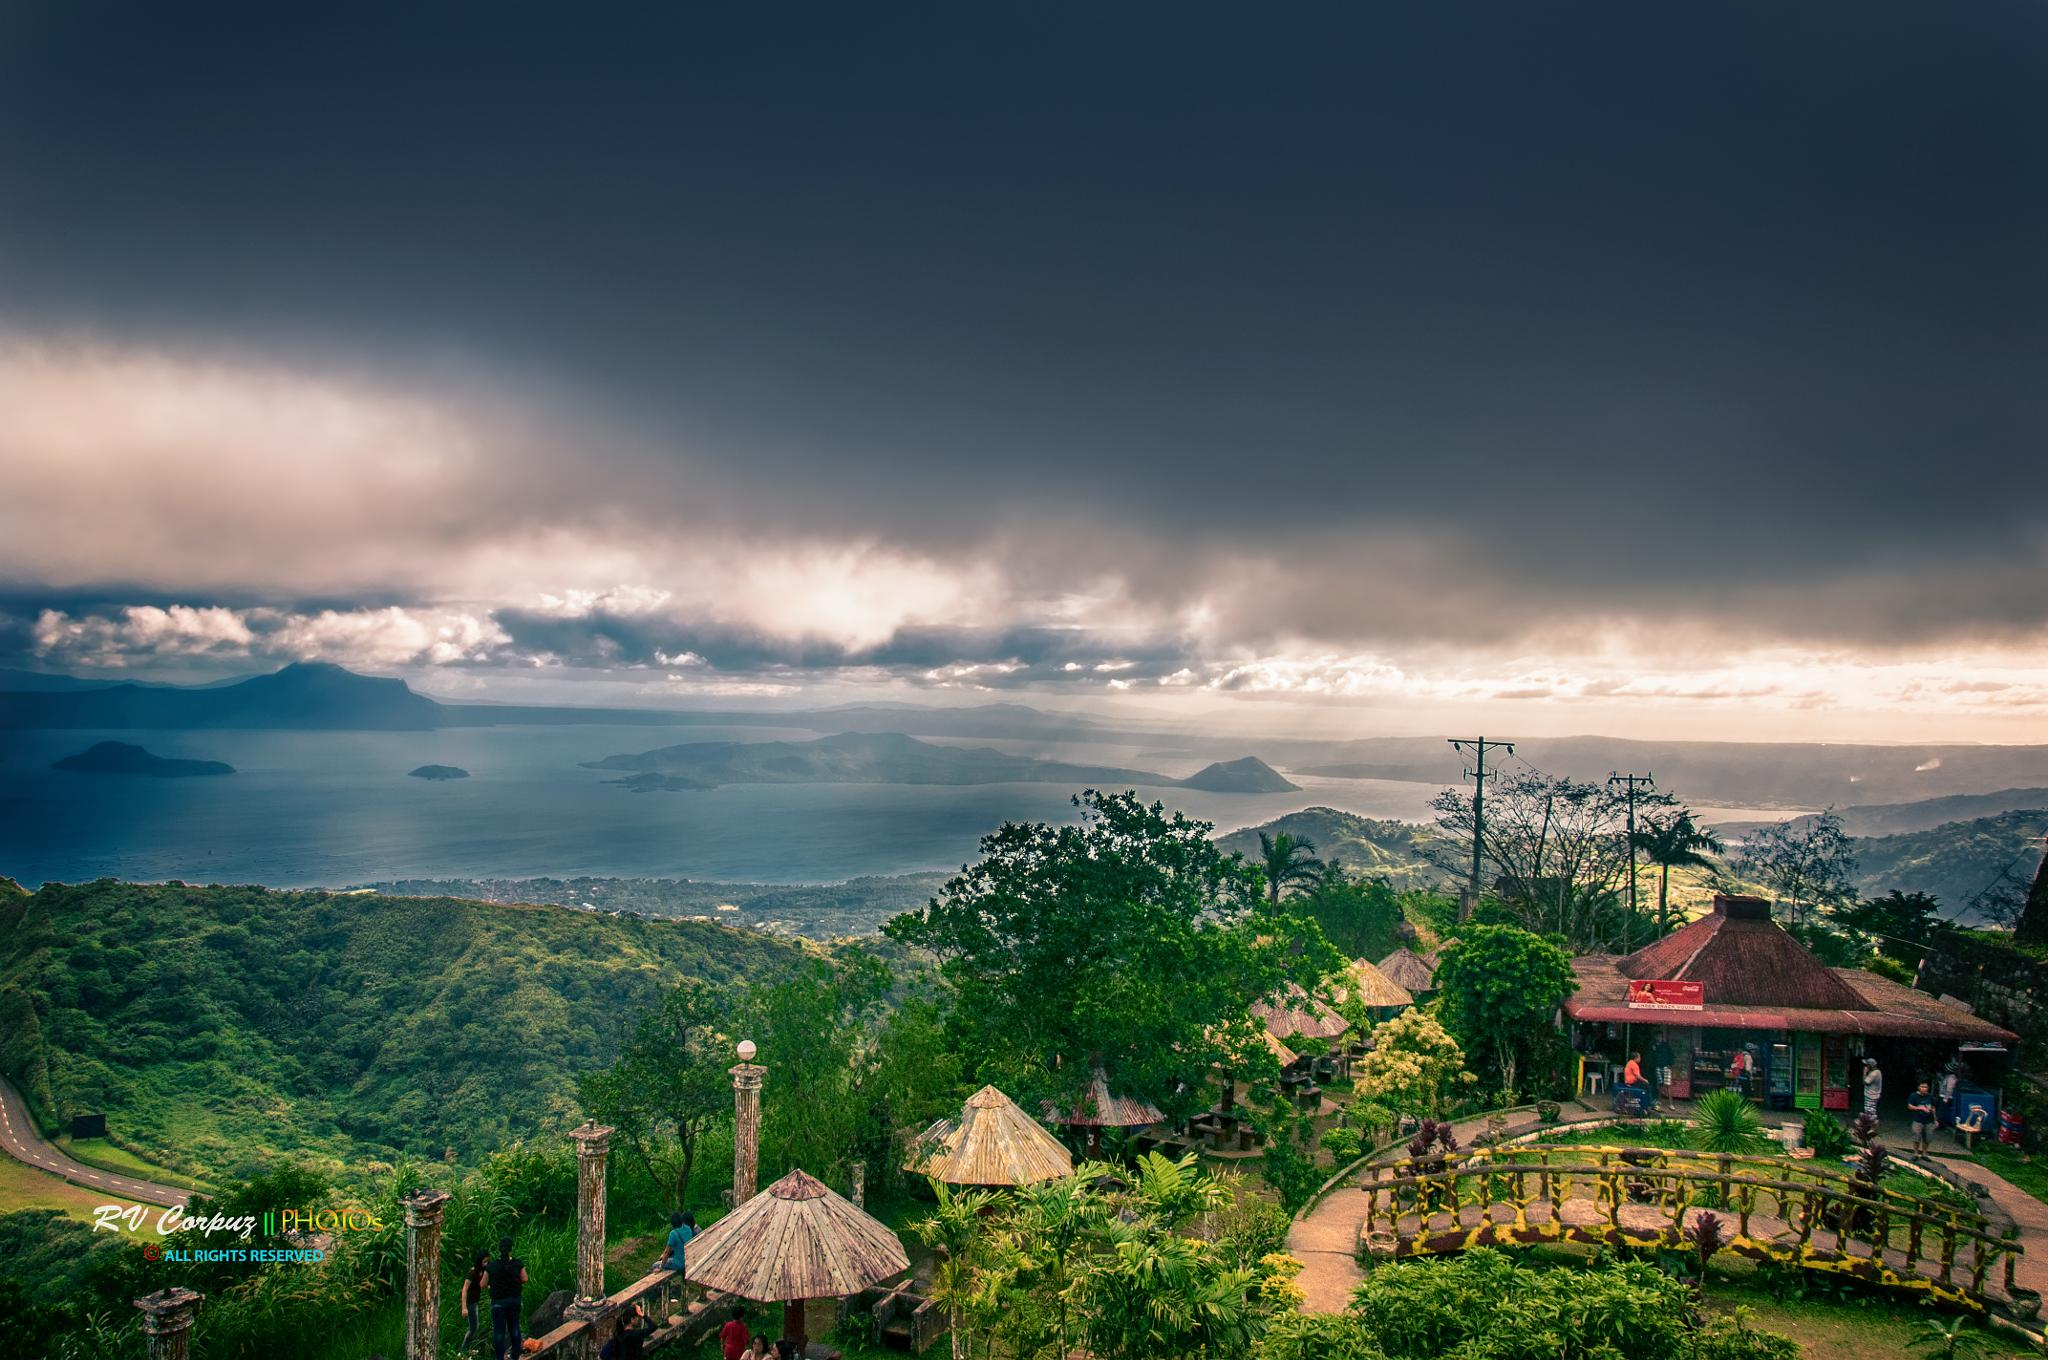 STORM is Brewing 2 by roland.corpuz3